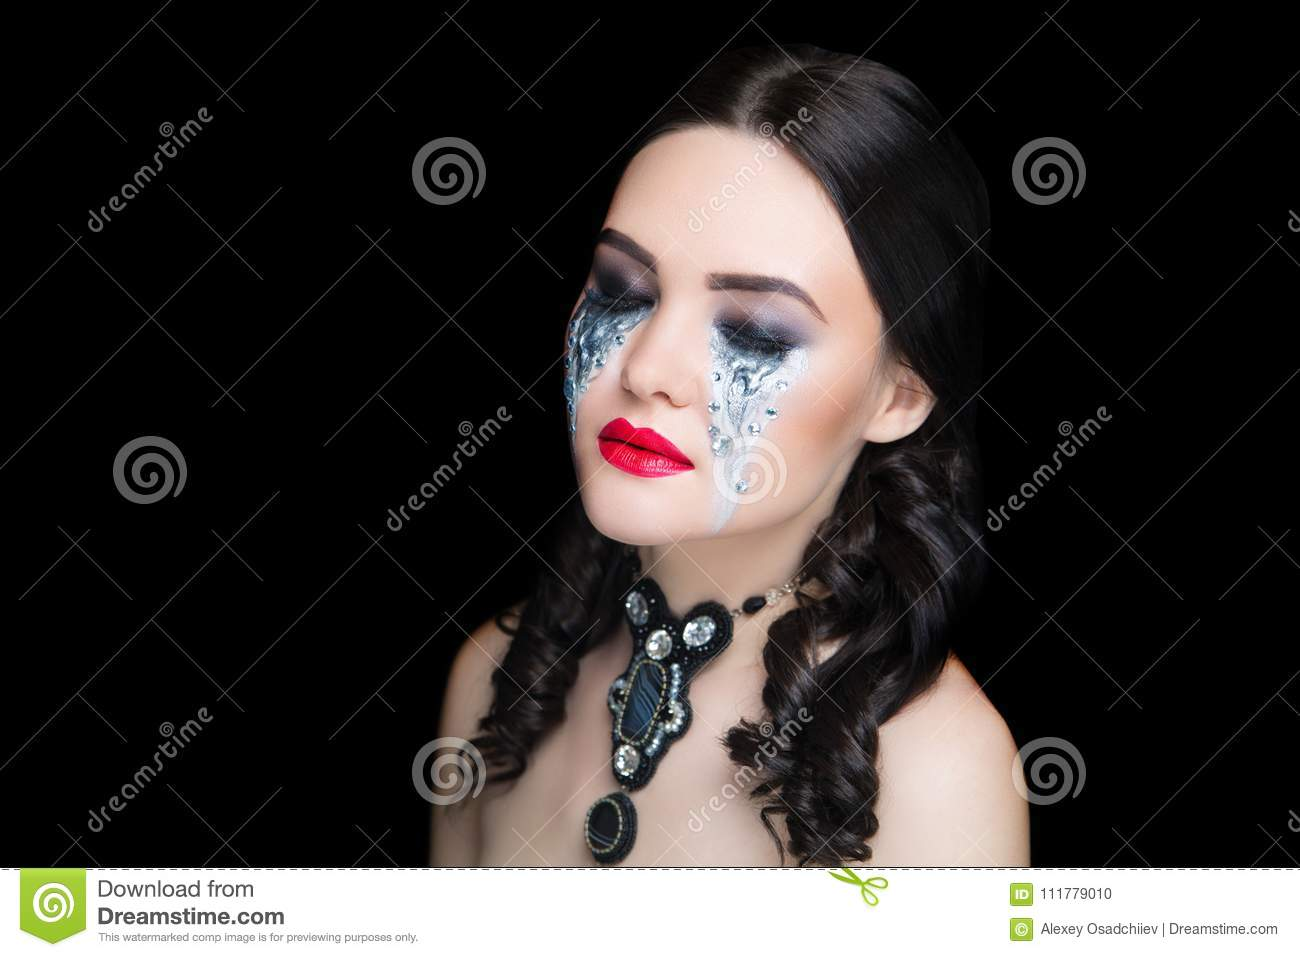 Woman art make up silver tears